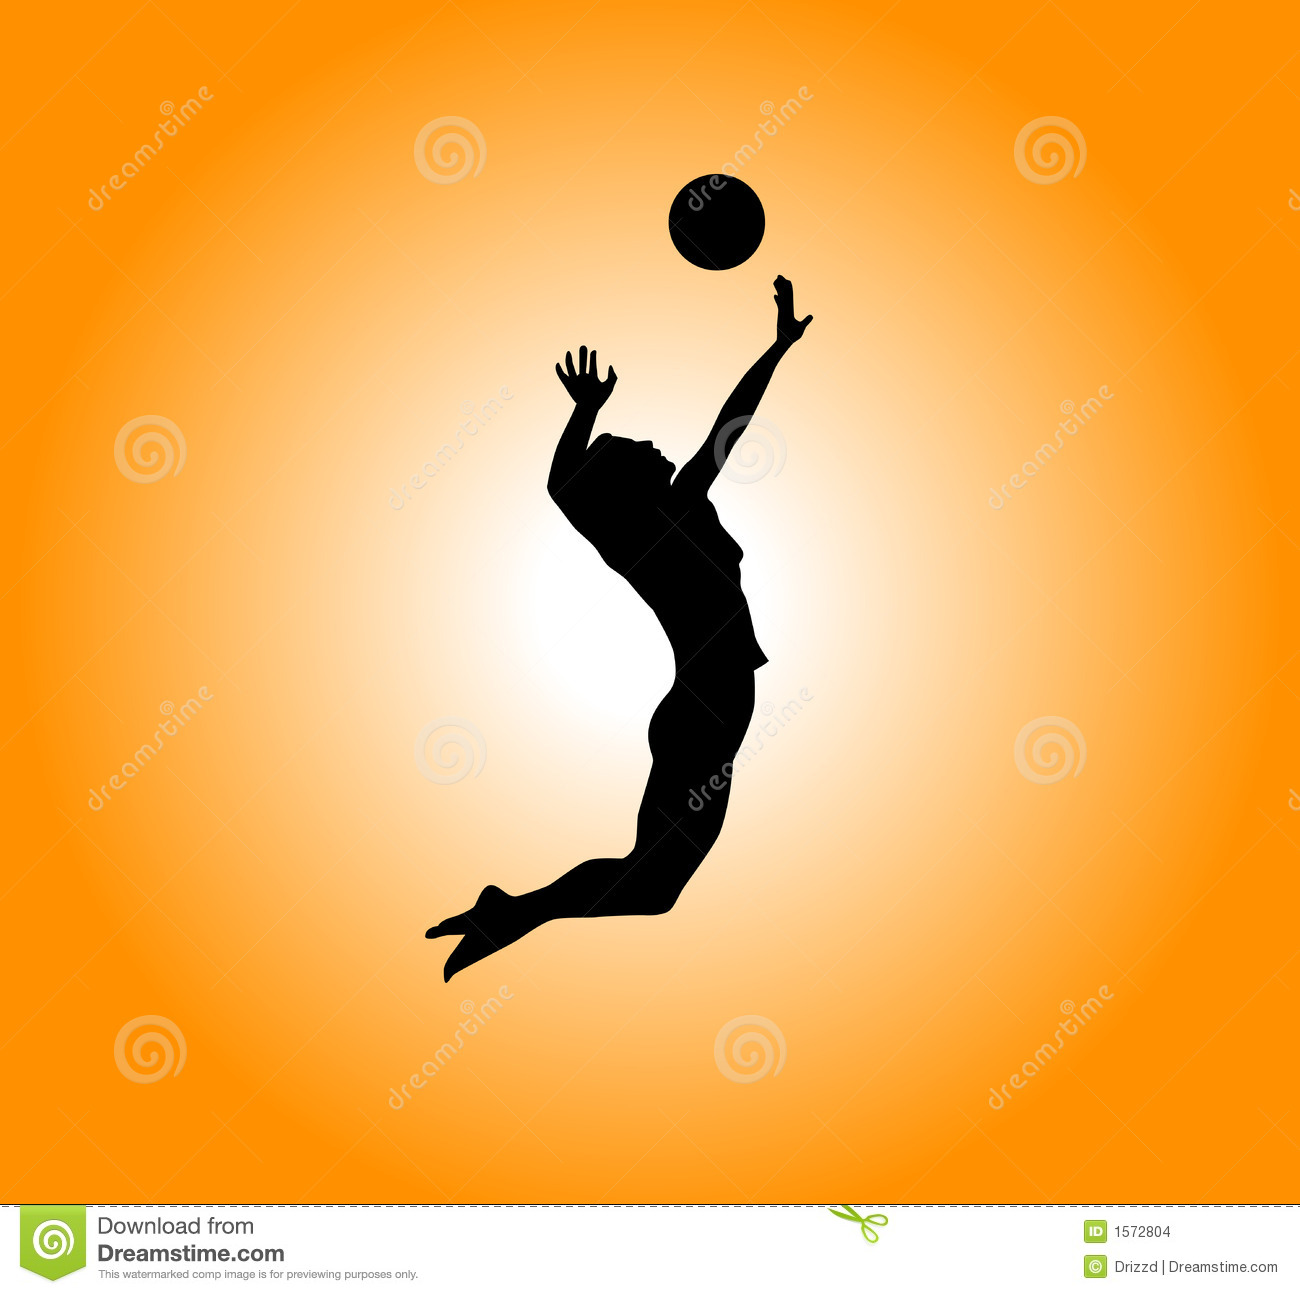 Volleyball Stock Illustration. Illustration Of